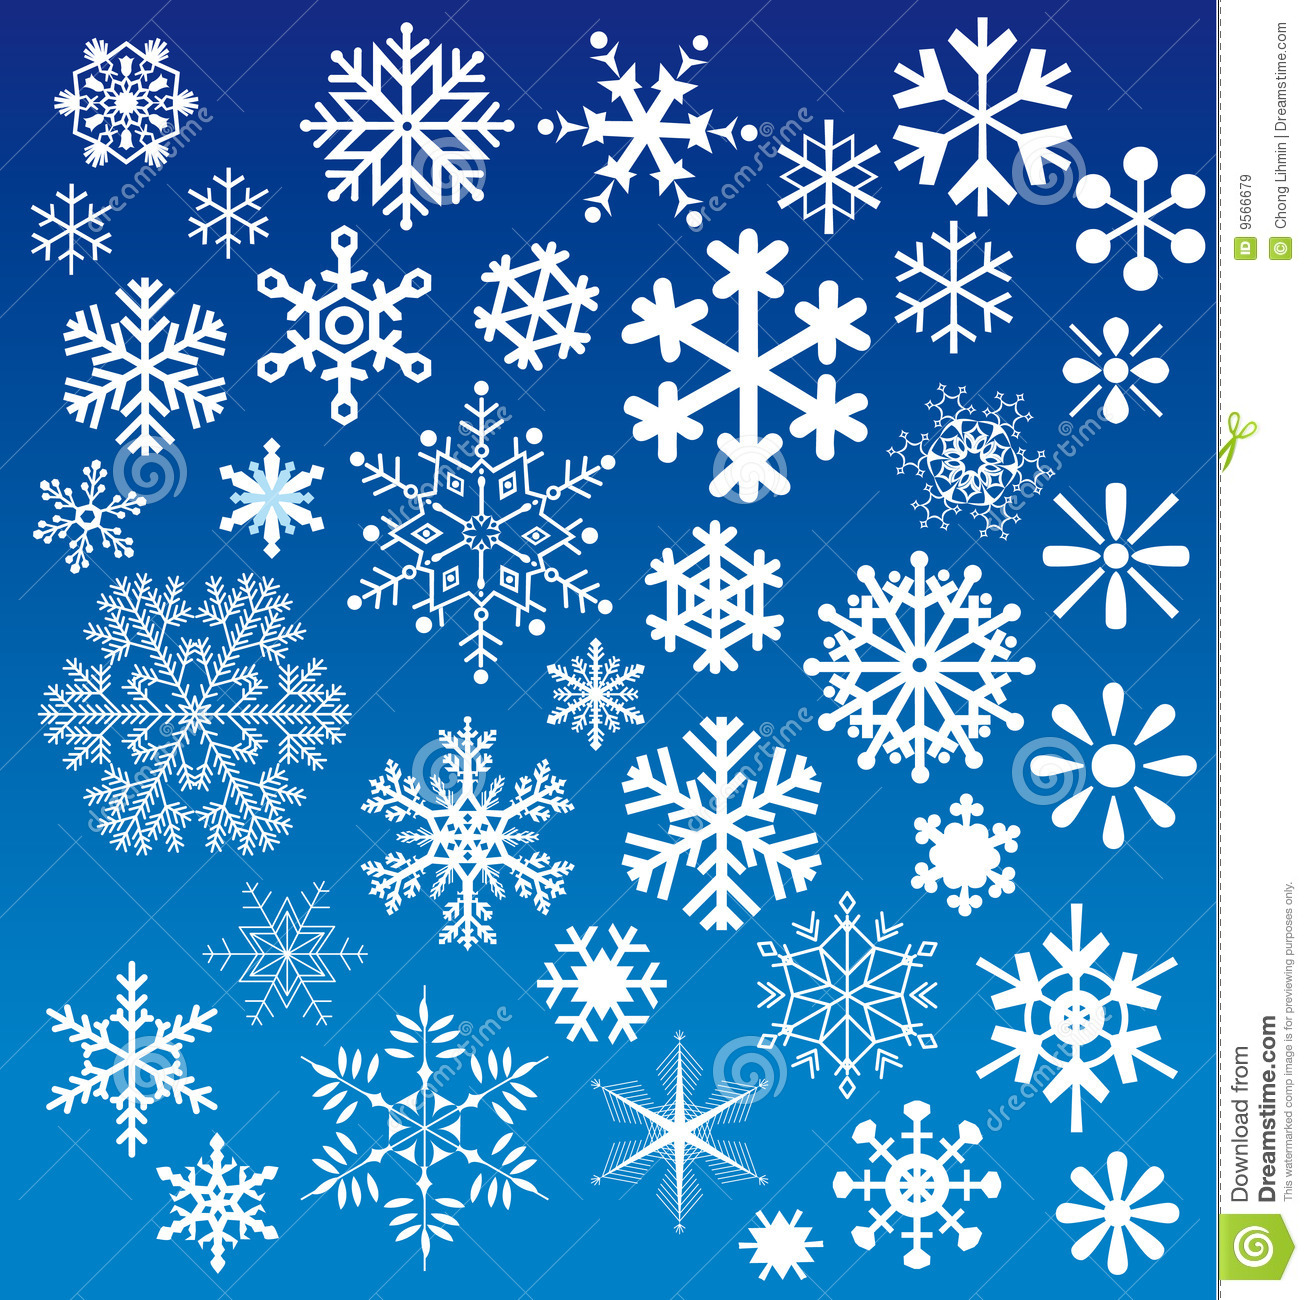 Snow Falling Video Wallpaper Snow Flakes Choices Stock Vector Image Of Seasonal